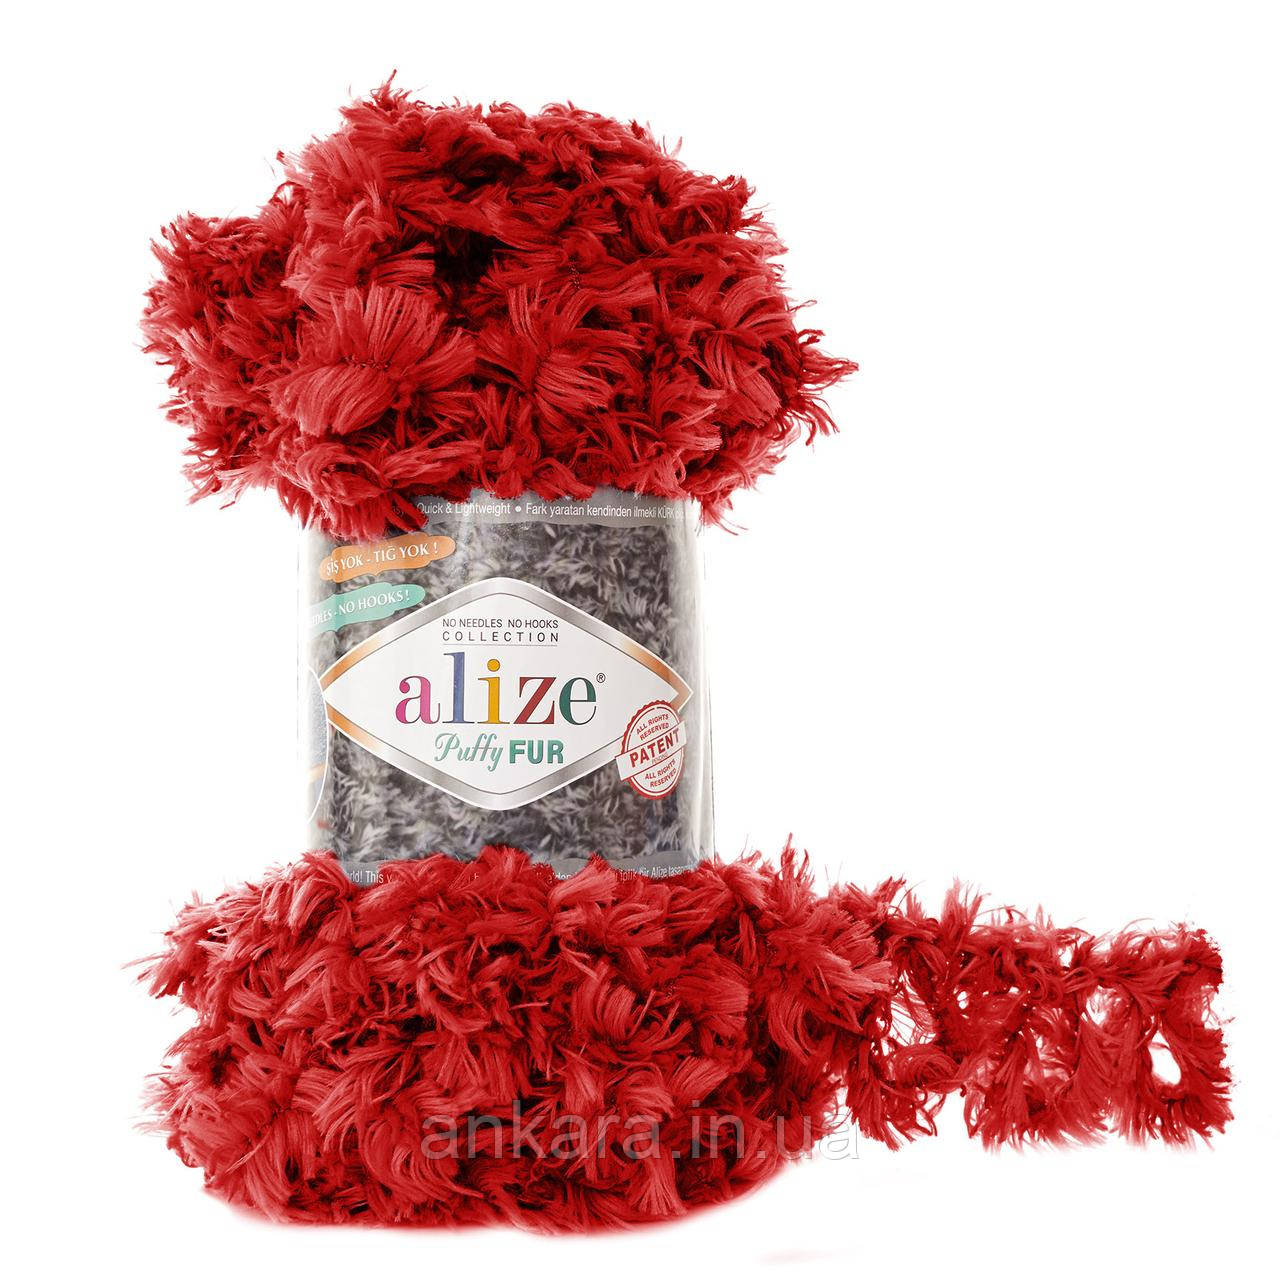 Alize Puffy Fur 6109